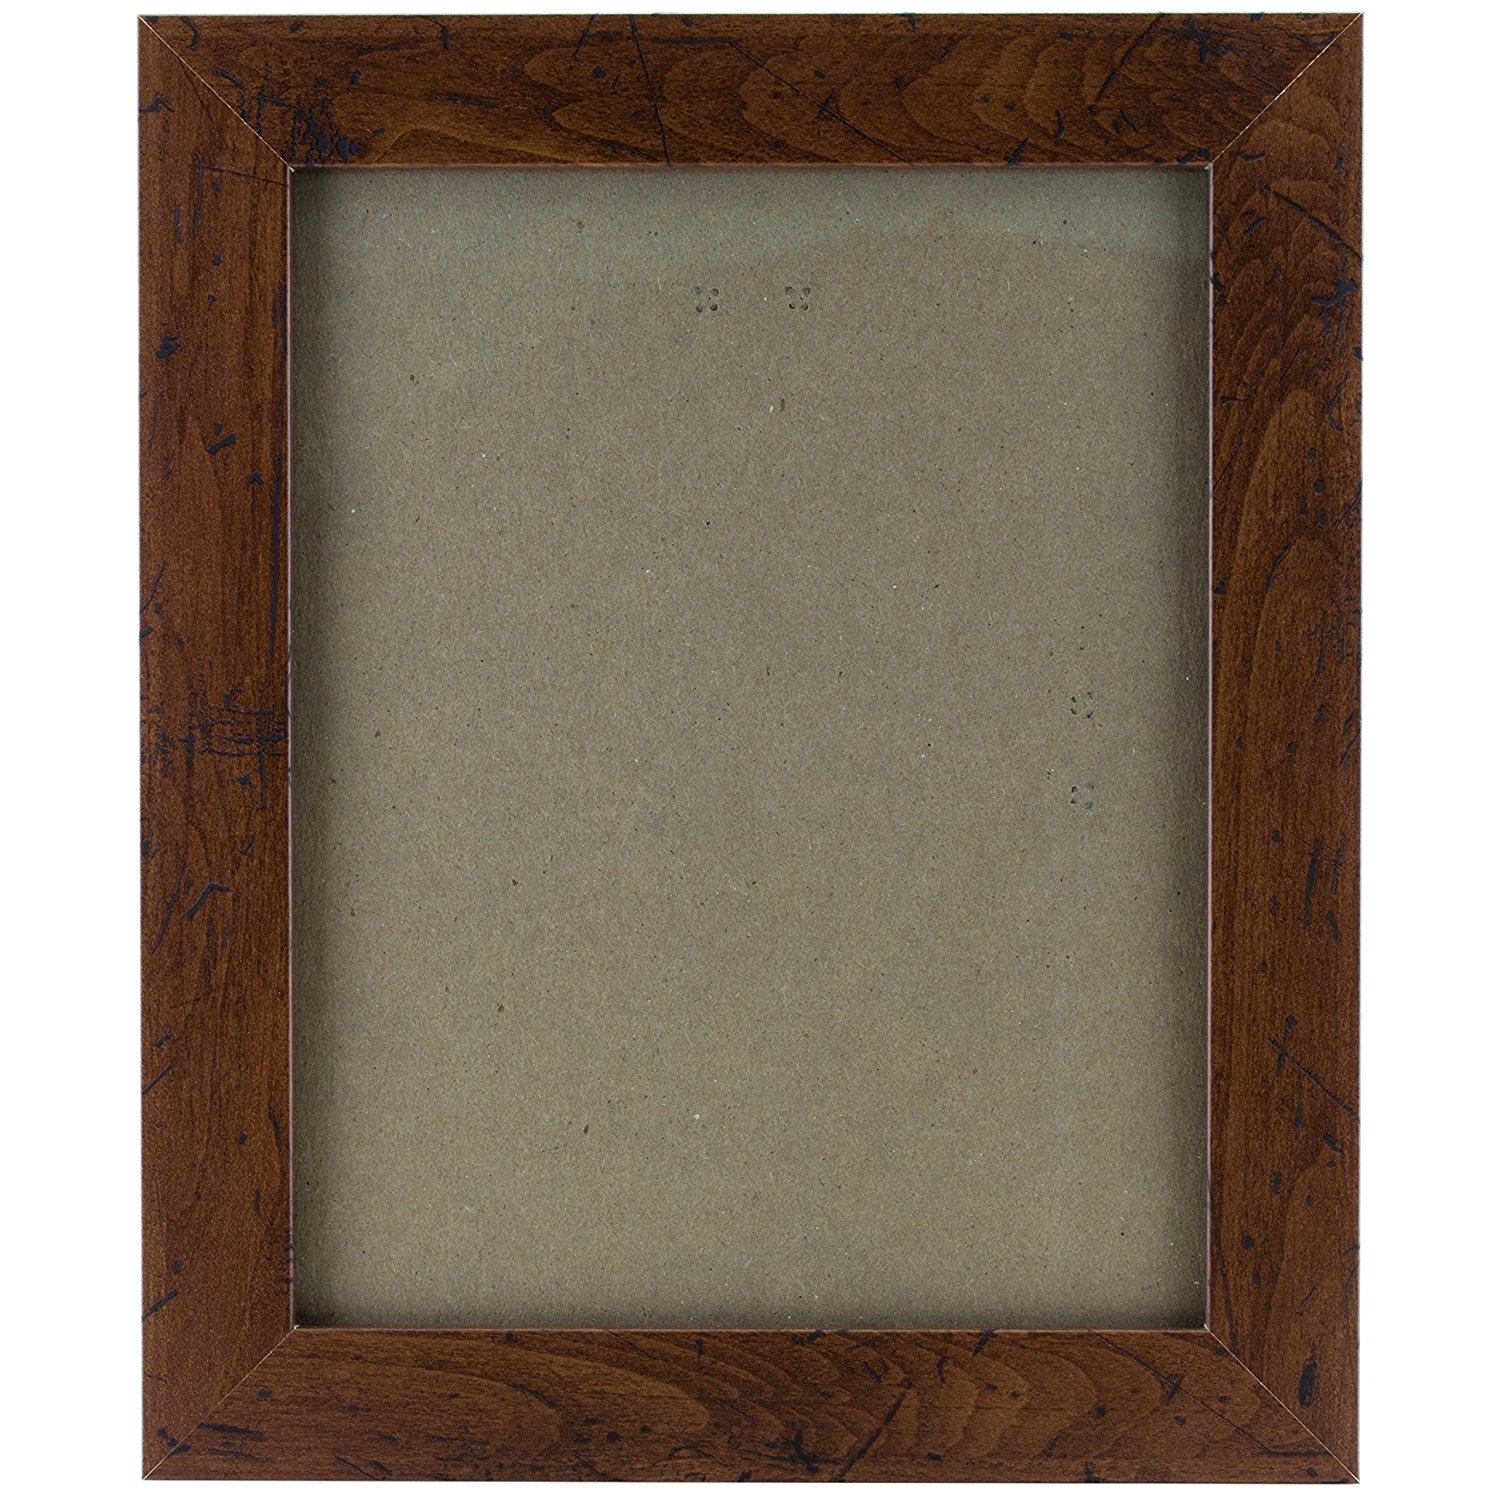 Cheap Frames 26 X 36 Find Frames 26 X 36 Deals On Line At Alibabacom